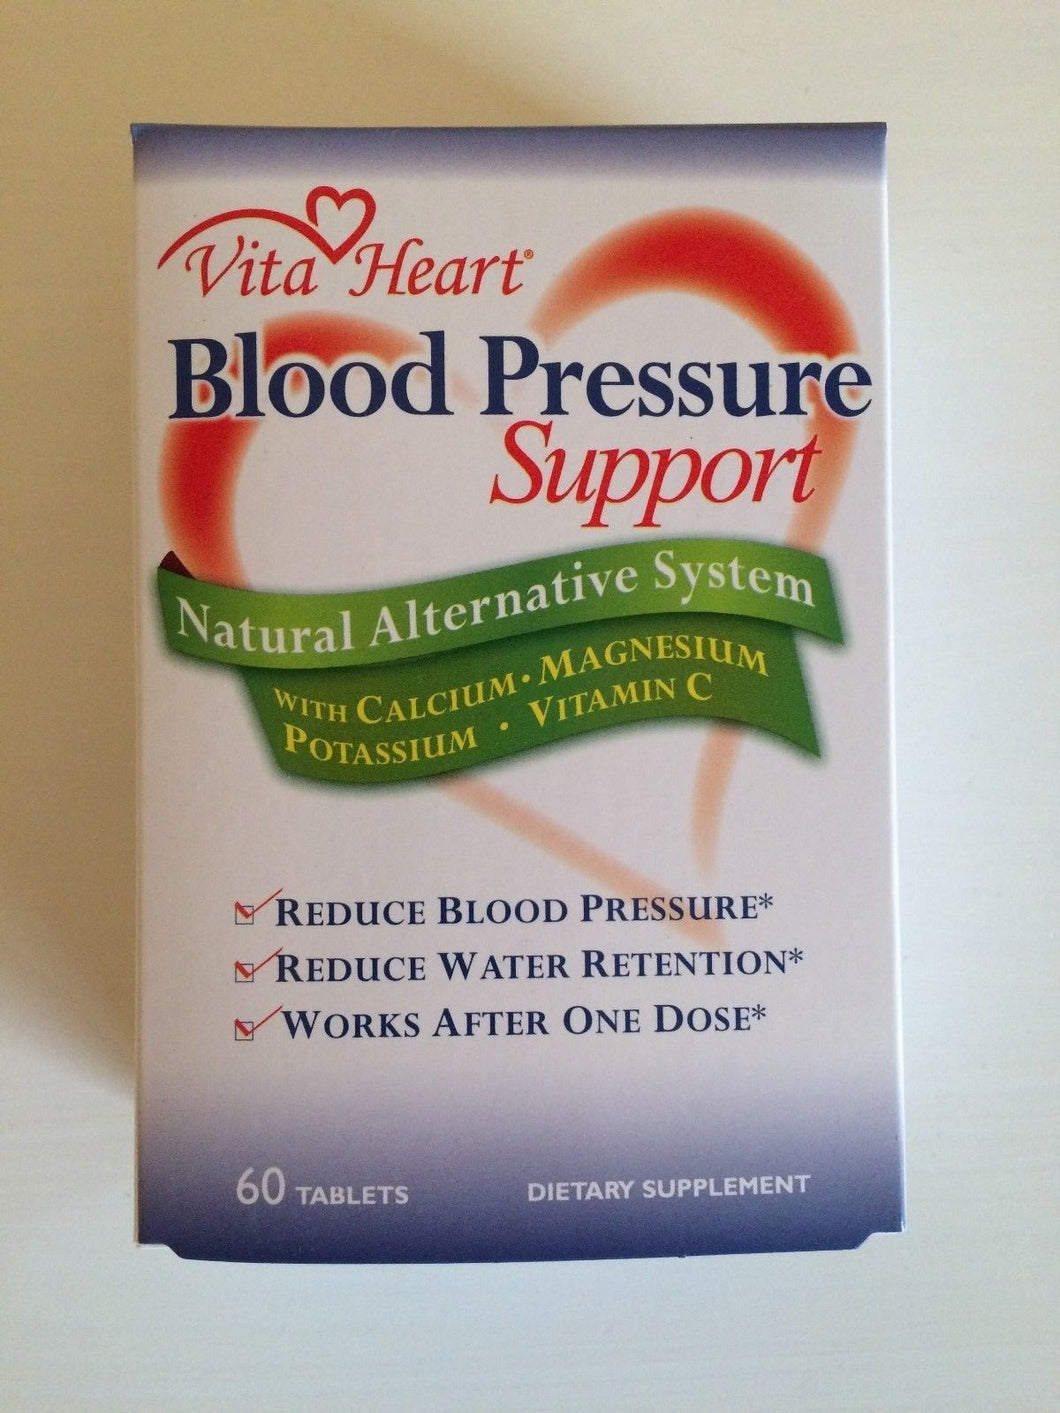 VITAHEART BLOOD PRESSURE SUPPORT - 60 CAPLETS